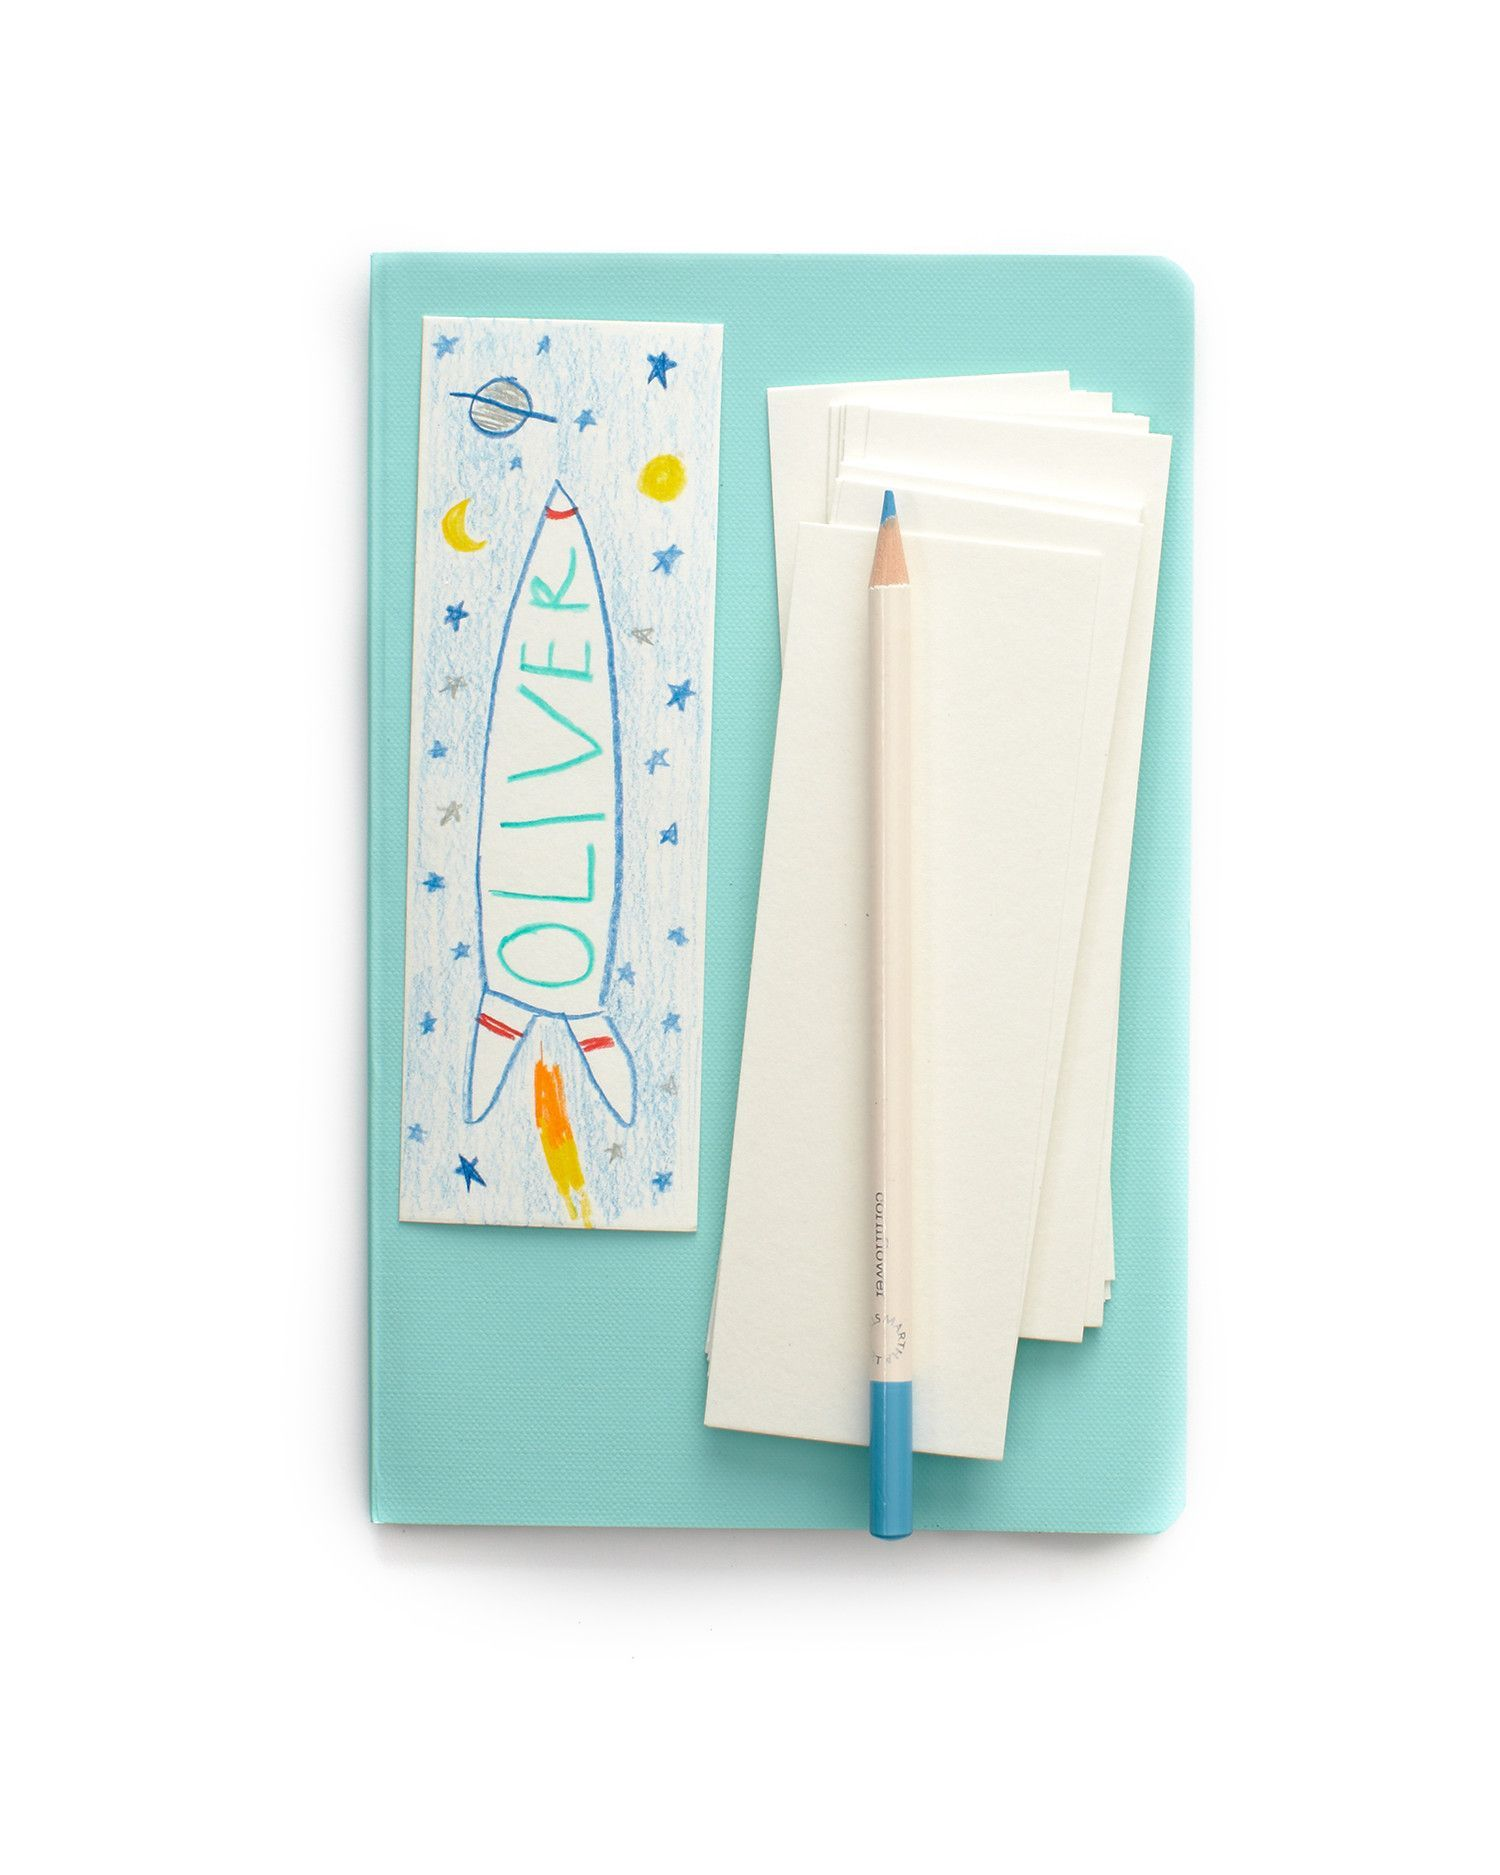 Your camper and his bunkmates can personalize these blank bookmarks ...